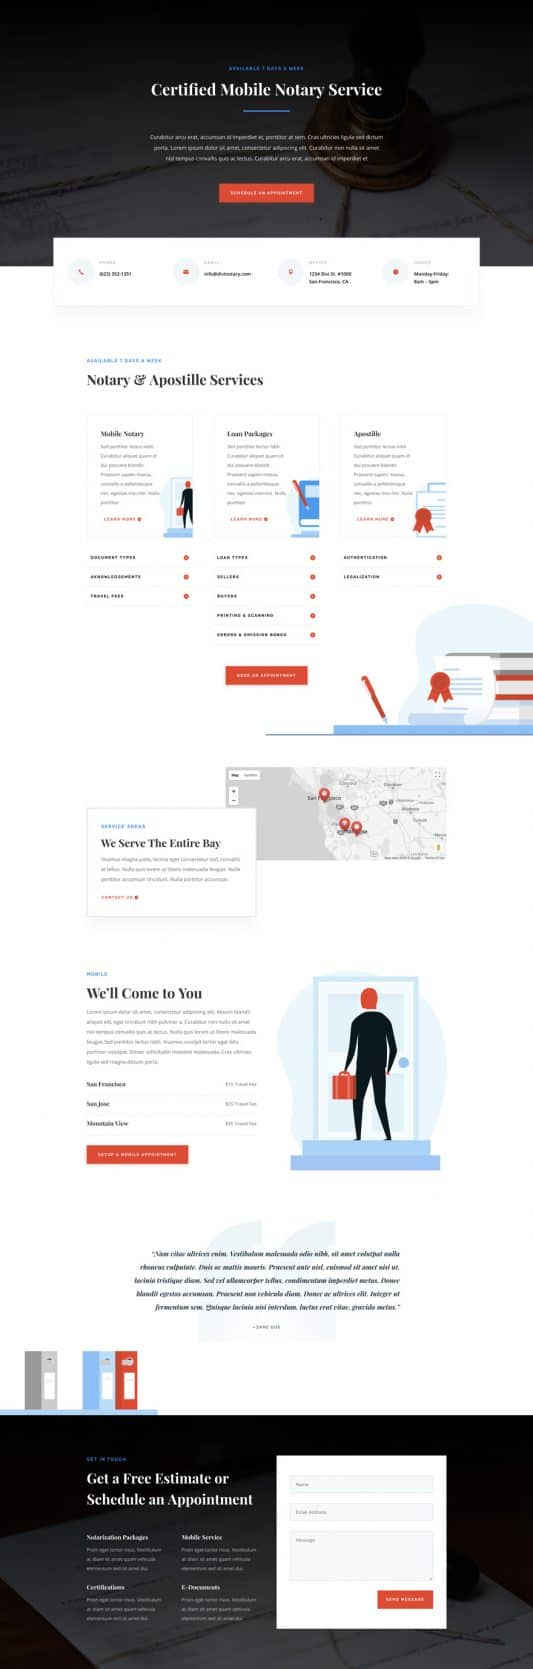 Notary Public Web Design 4